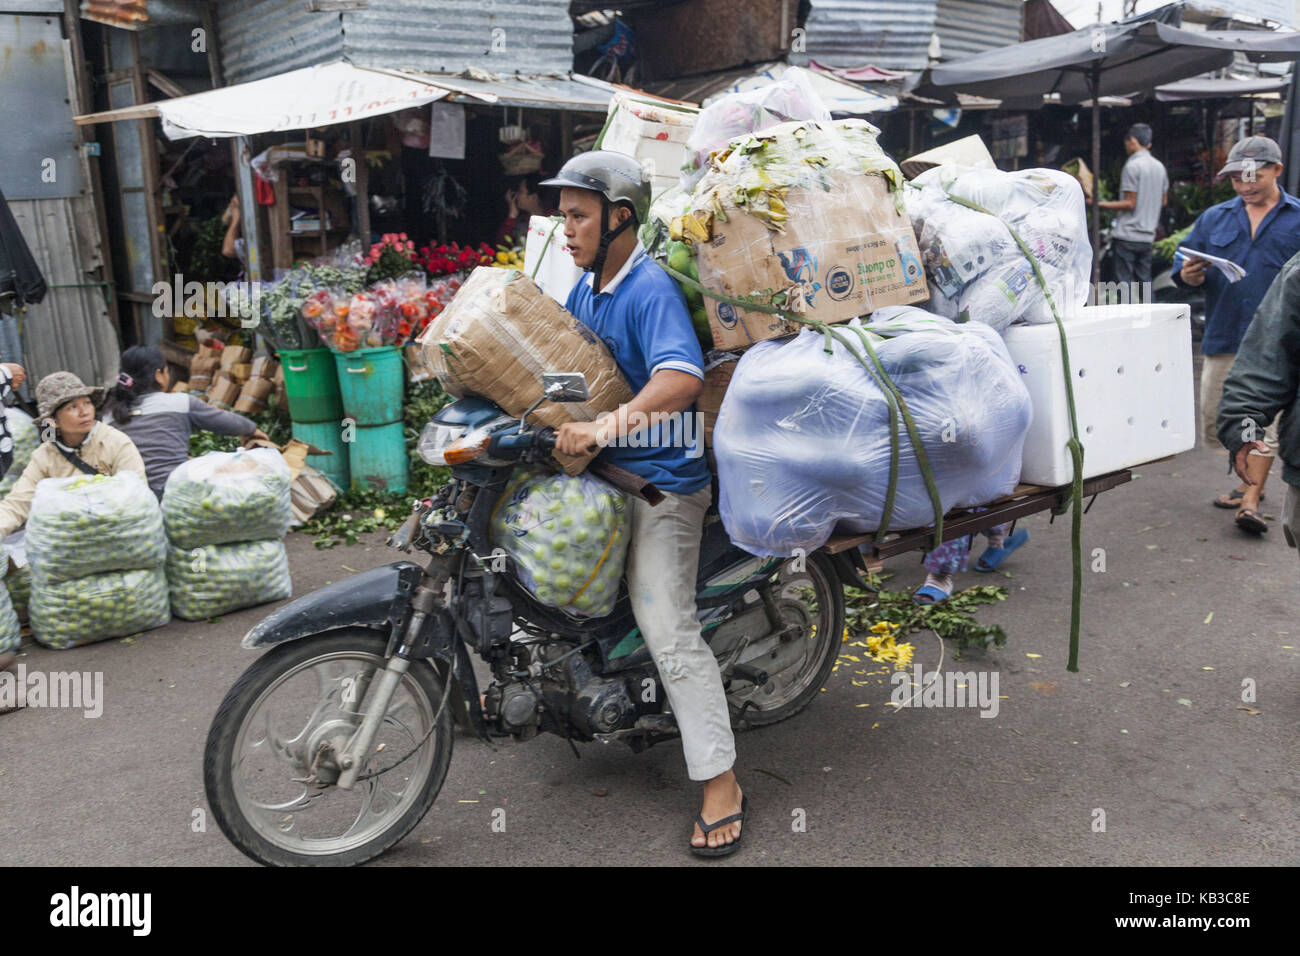 Vietnam, Nha Trang, central market Cho Dam, man carries goods on fully charged motorbike, - Stock Image